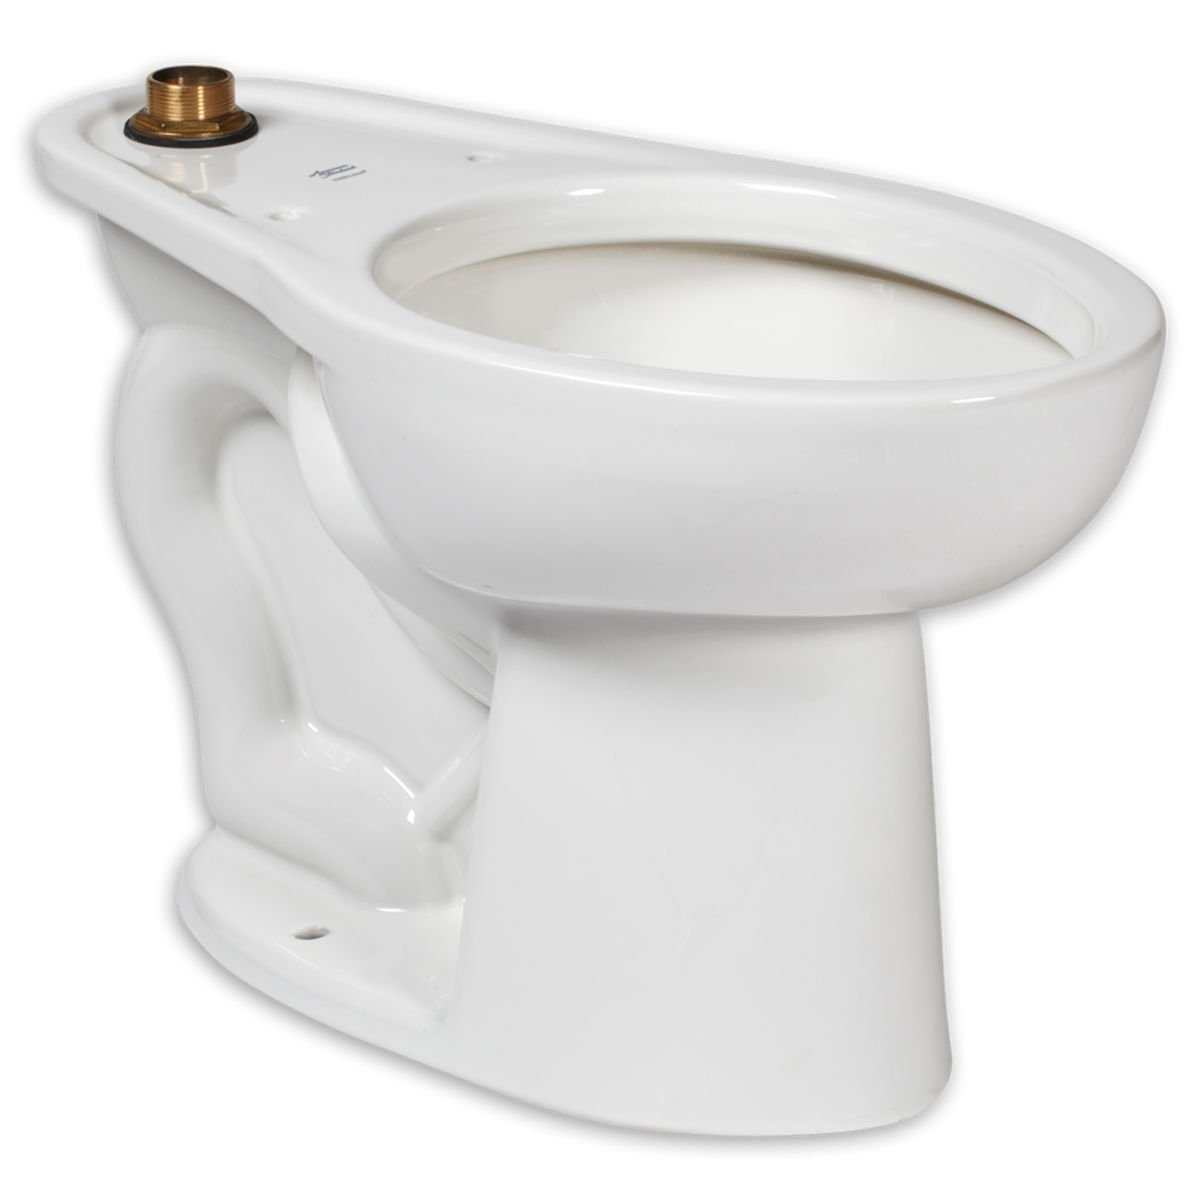 Cheap Ada Toilet, find Ada Toilet deals on line at Alibaba.com